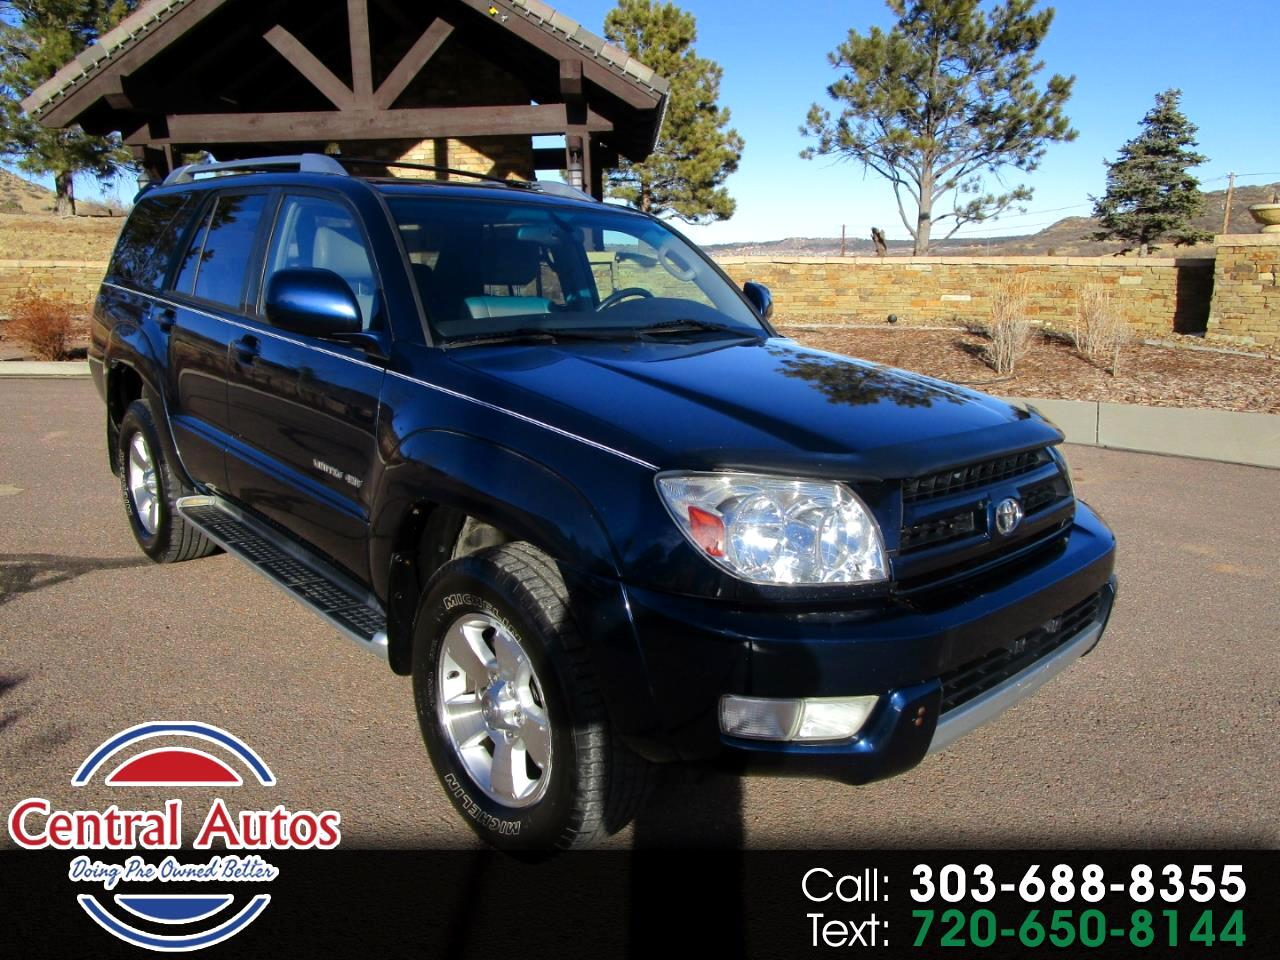 2003 Toyota 4Runner 4dr Limited V6 Auto 4WD (Natl)